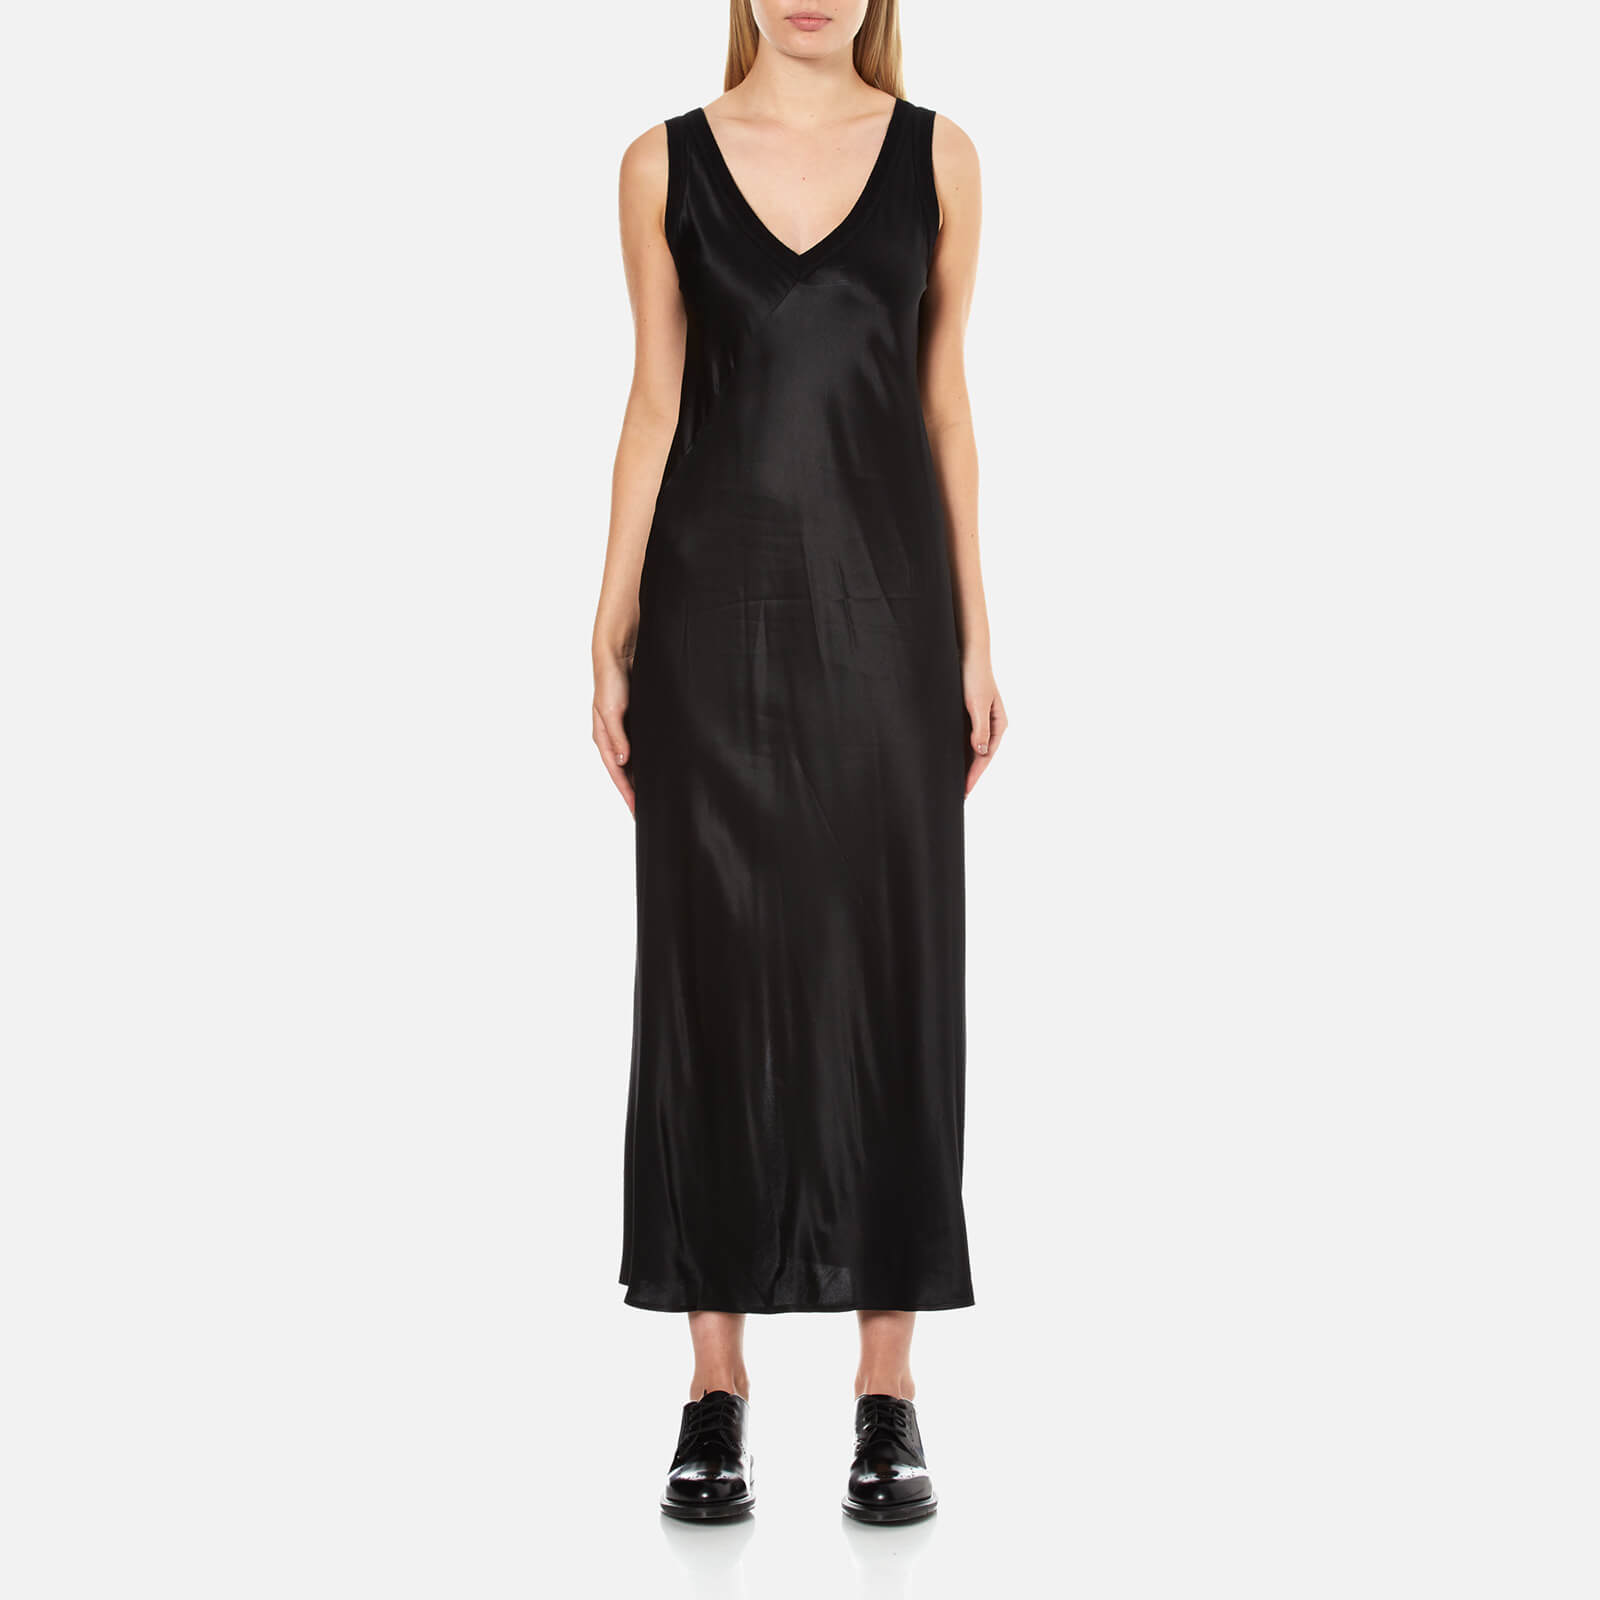 96ea0413382671 ... DKNY Women s Sleeveless V-Neck Slip Dress with Ribbed Trims and Back  Slit - Black